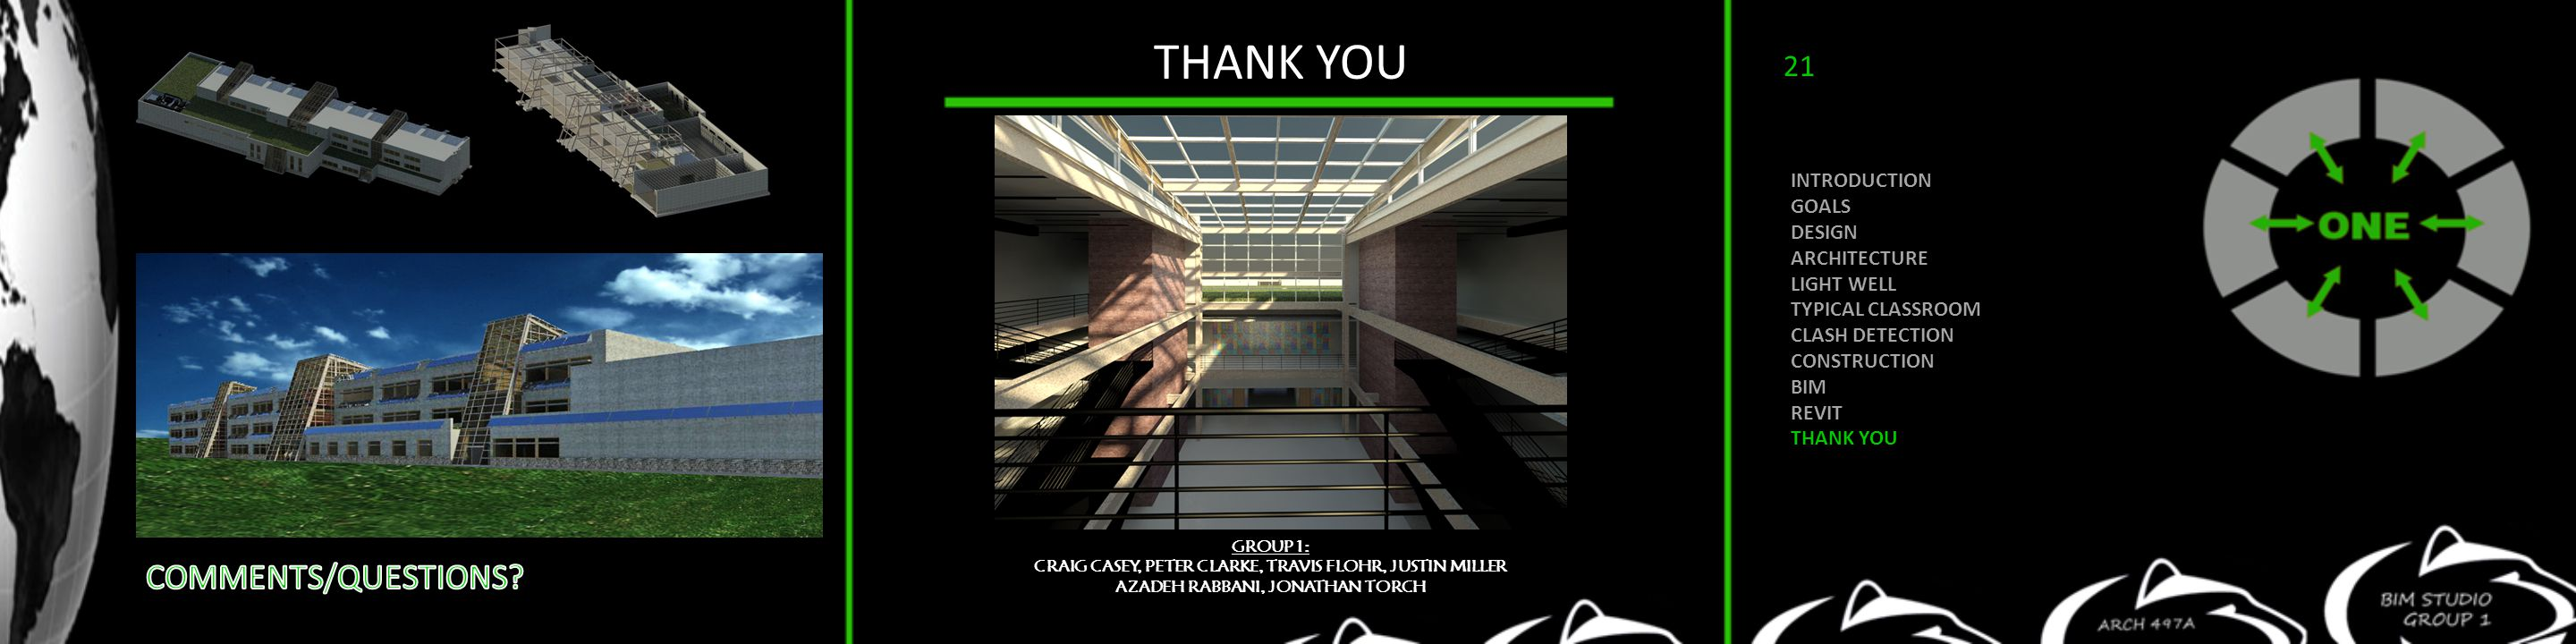 THANK YOU INTRODUCTION GOALS DESIGN ARCHITECTURE LIGHT WELL TYPICAL CLASSROOM CLASH DETECTION CONSTRUCTION BIM REVIT THANK YOU GROUP 1: CRAIG CASEY, P